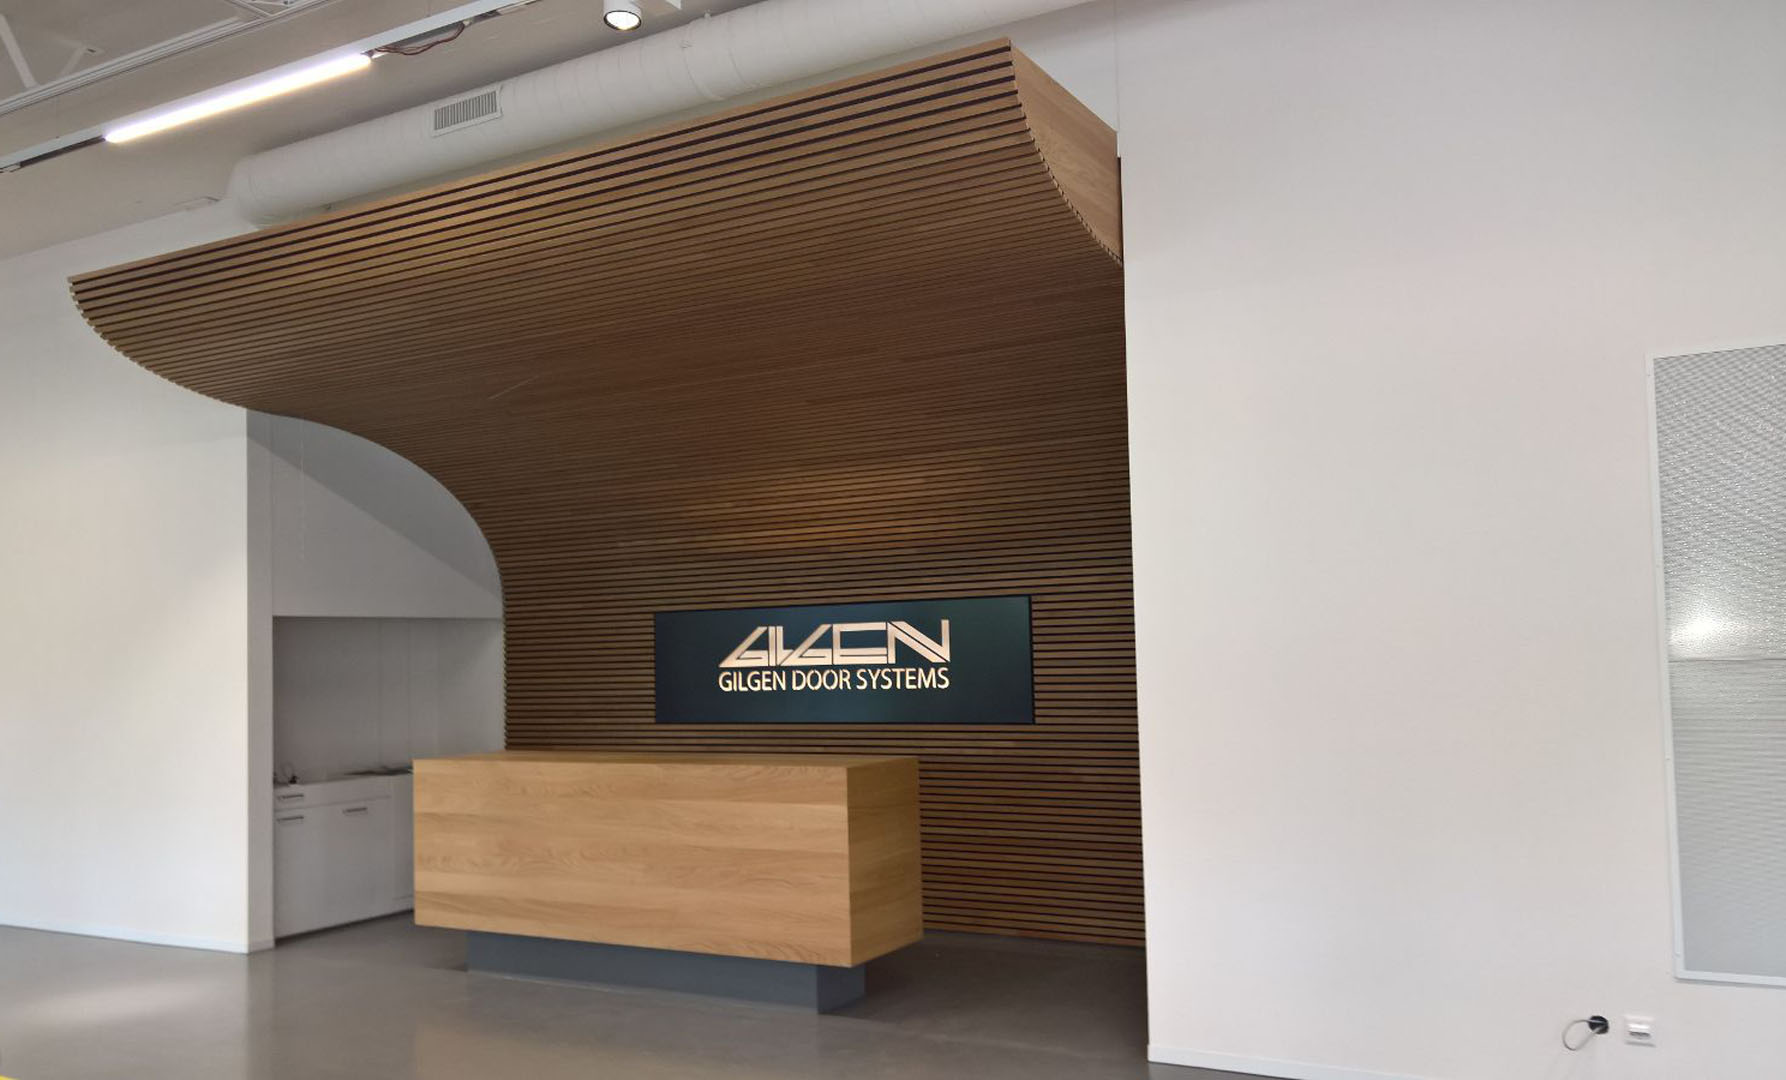 gilgen door systems, innenarchitektur showroom